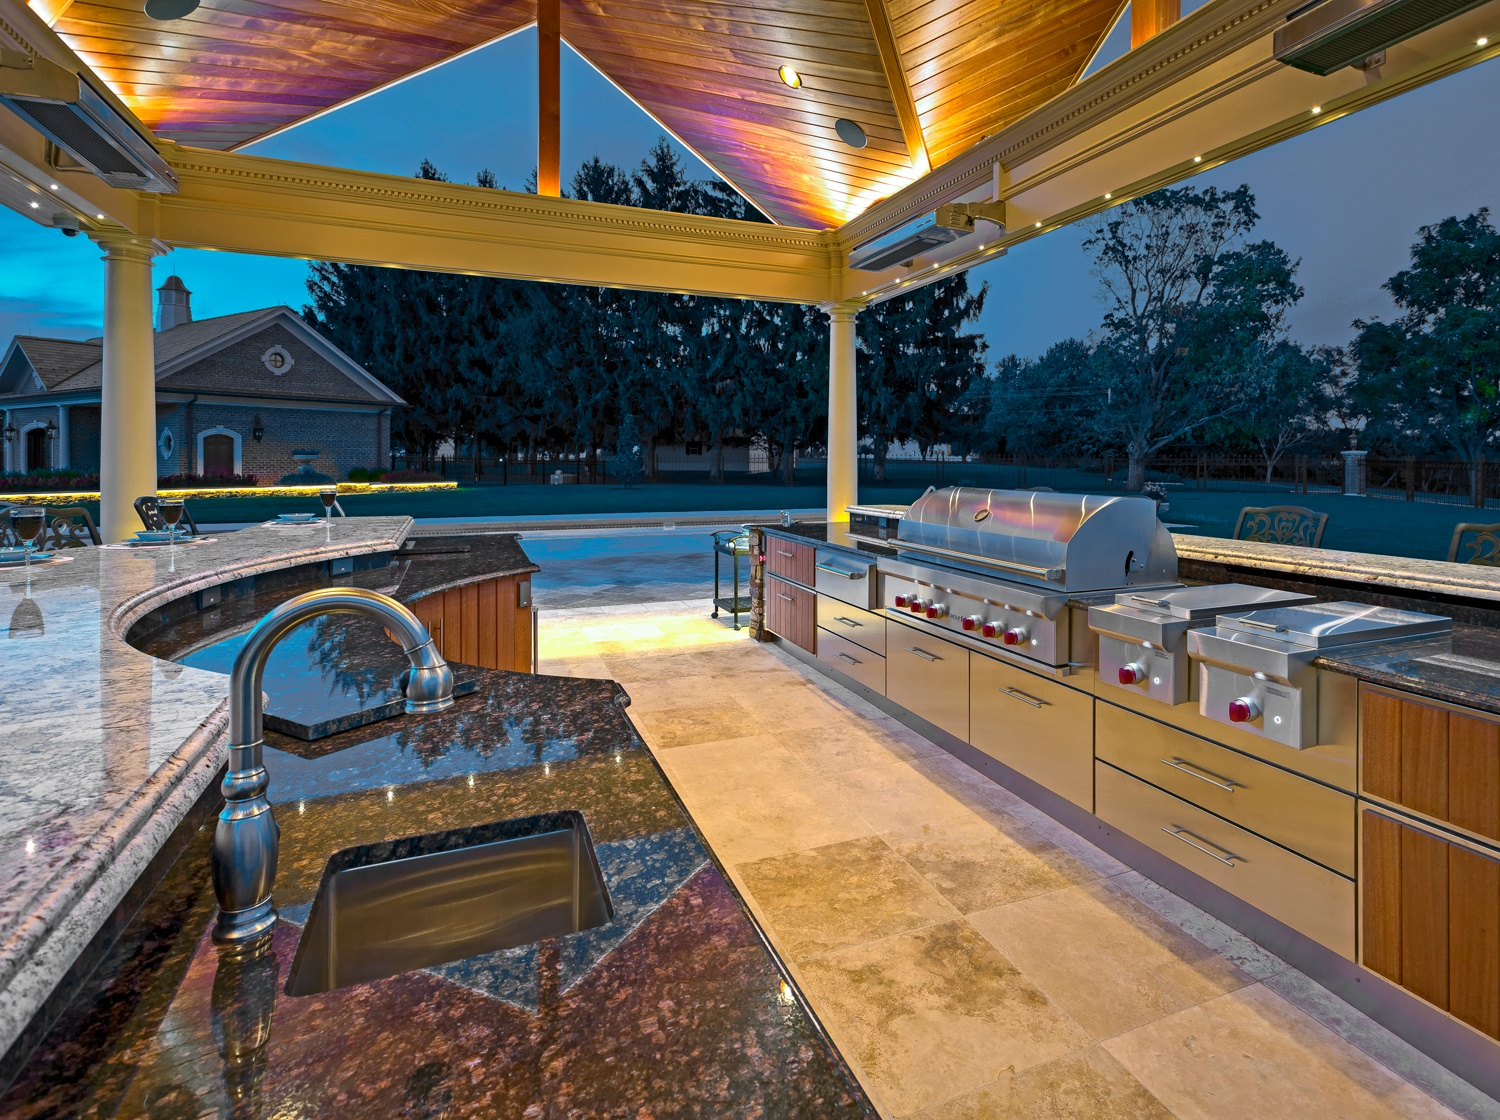 9 Of The Coolest Outdoor Kitchen Appliances We've Installed